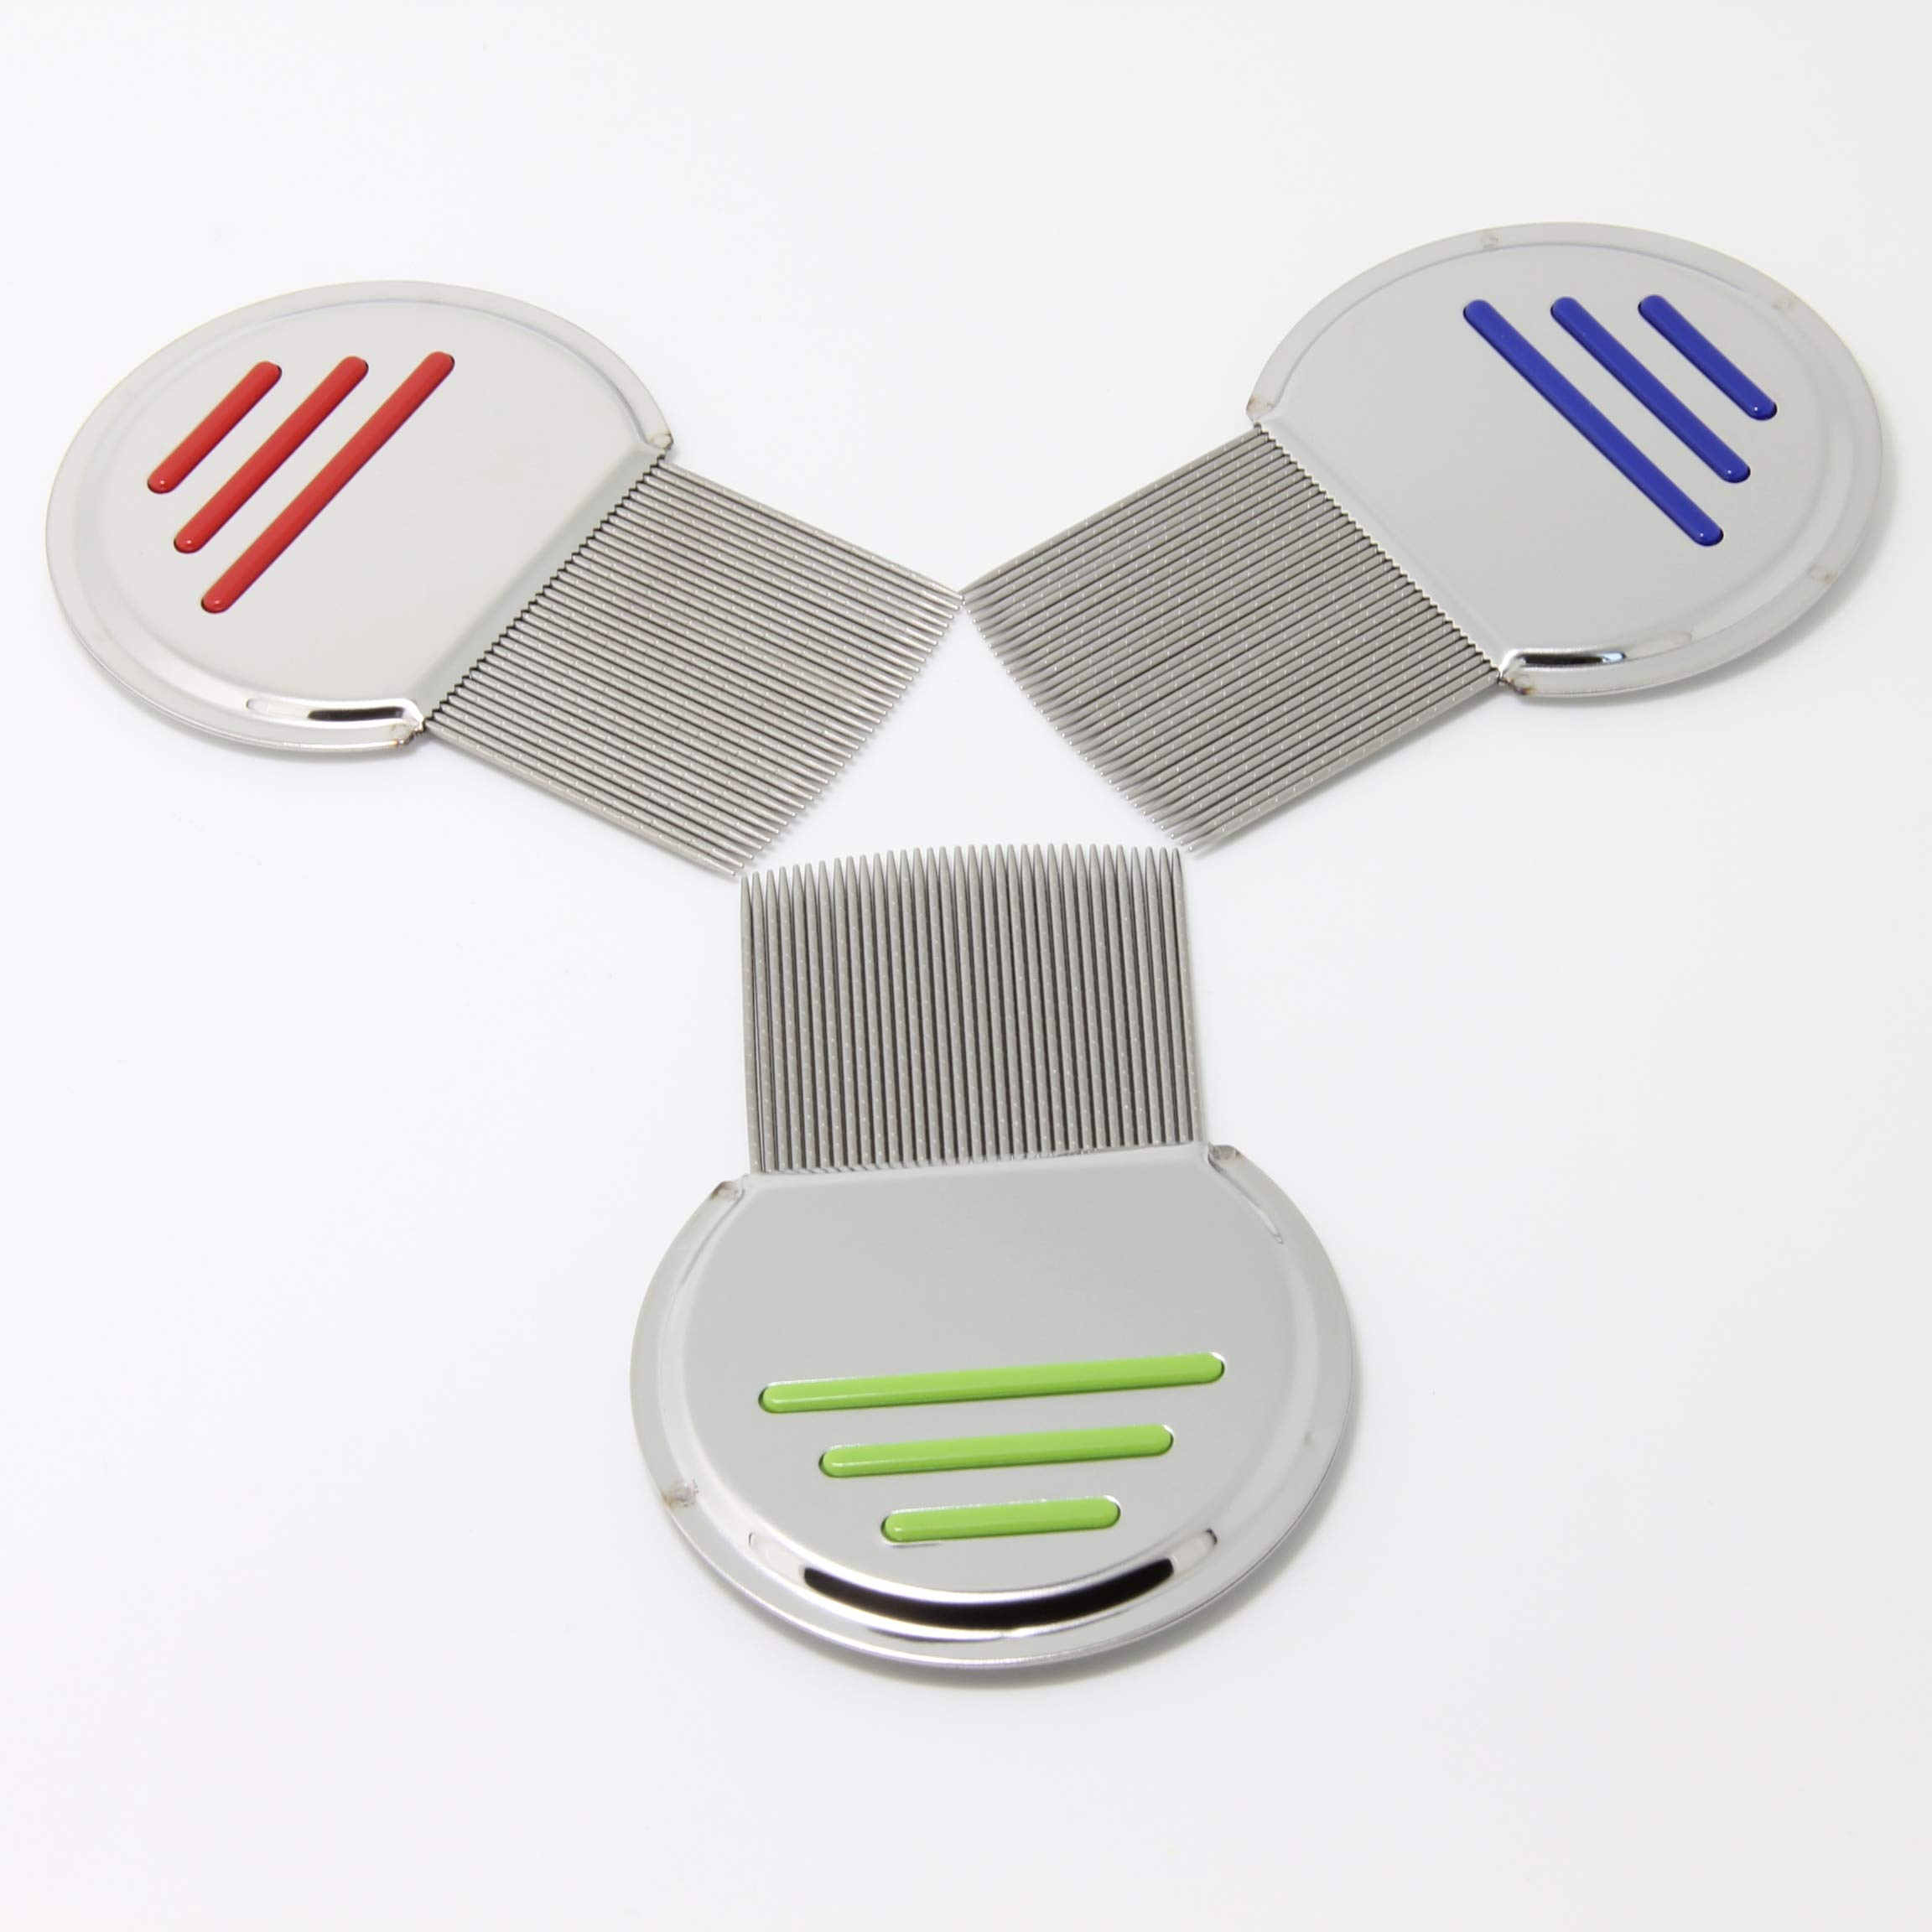 Goonpetchkrai.rapat7498 Lice Combs Set Lice Stainless Steel Metal Teeth by Goonpetchkrai.rapat7498